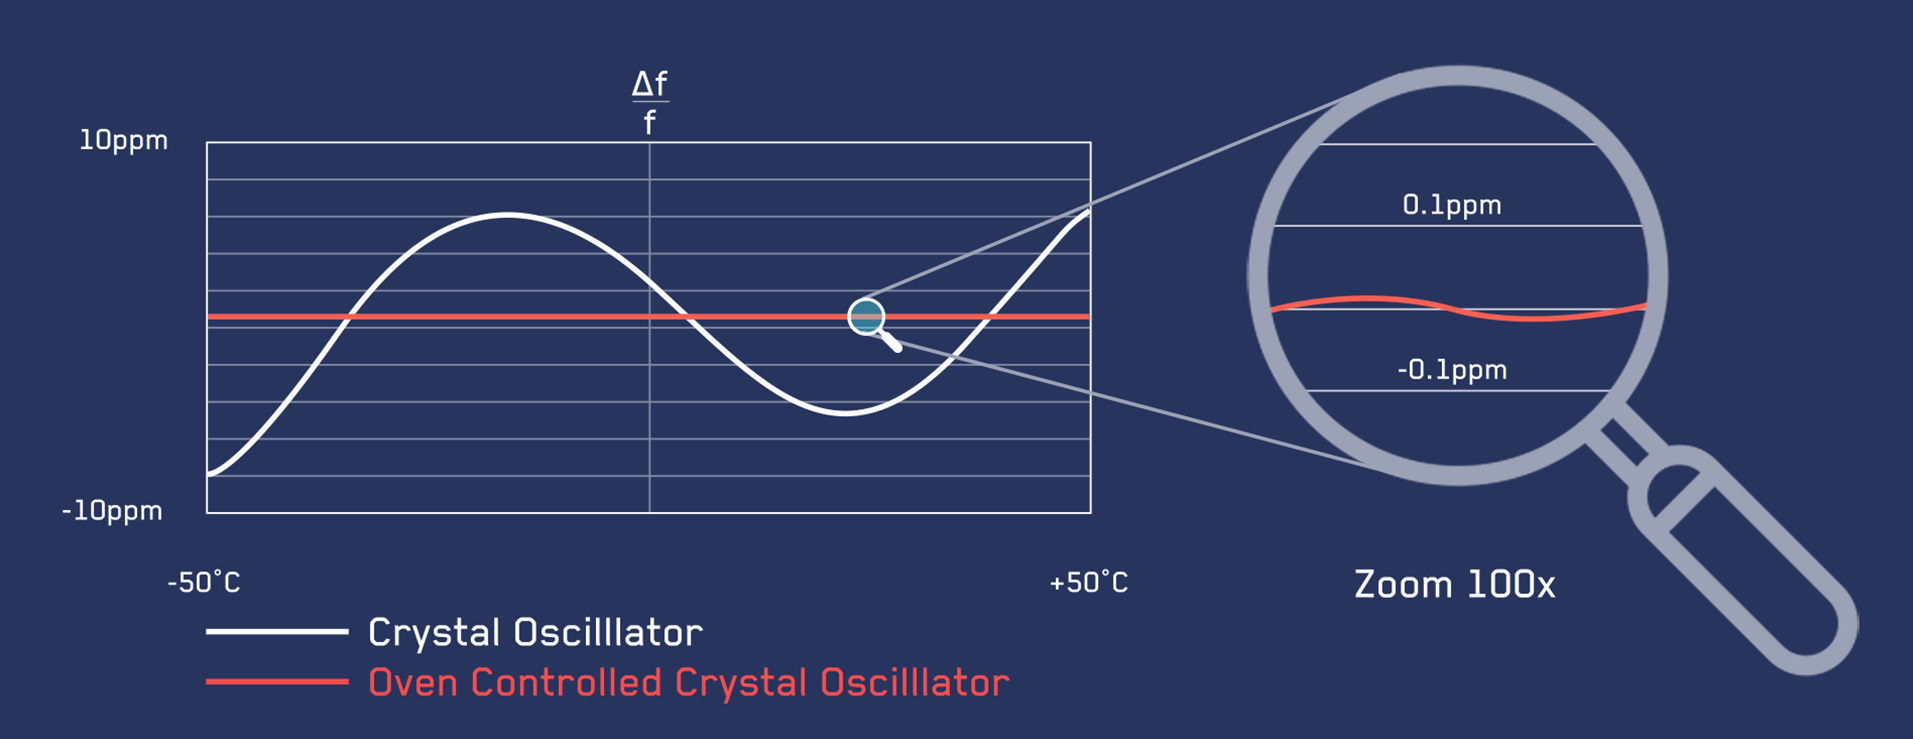 Graphic showing the temperature of the crystal clock remaining constant in the atomic clock